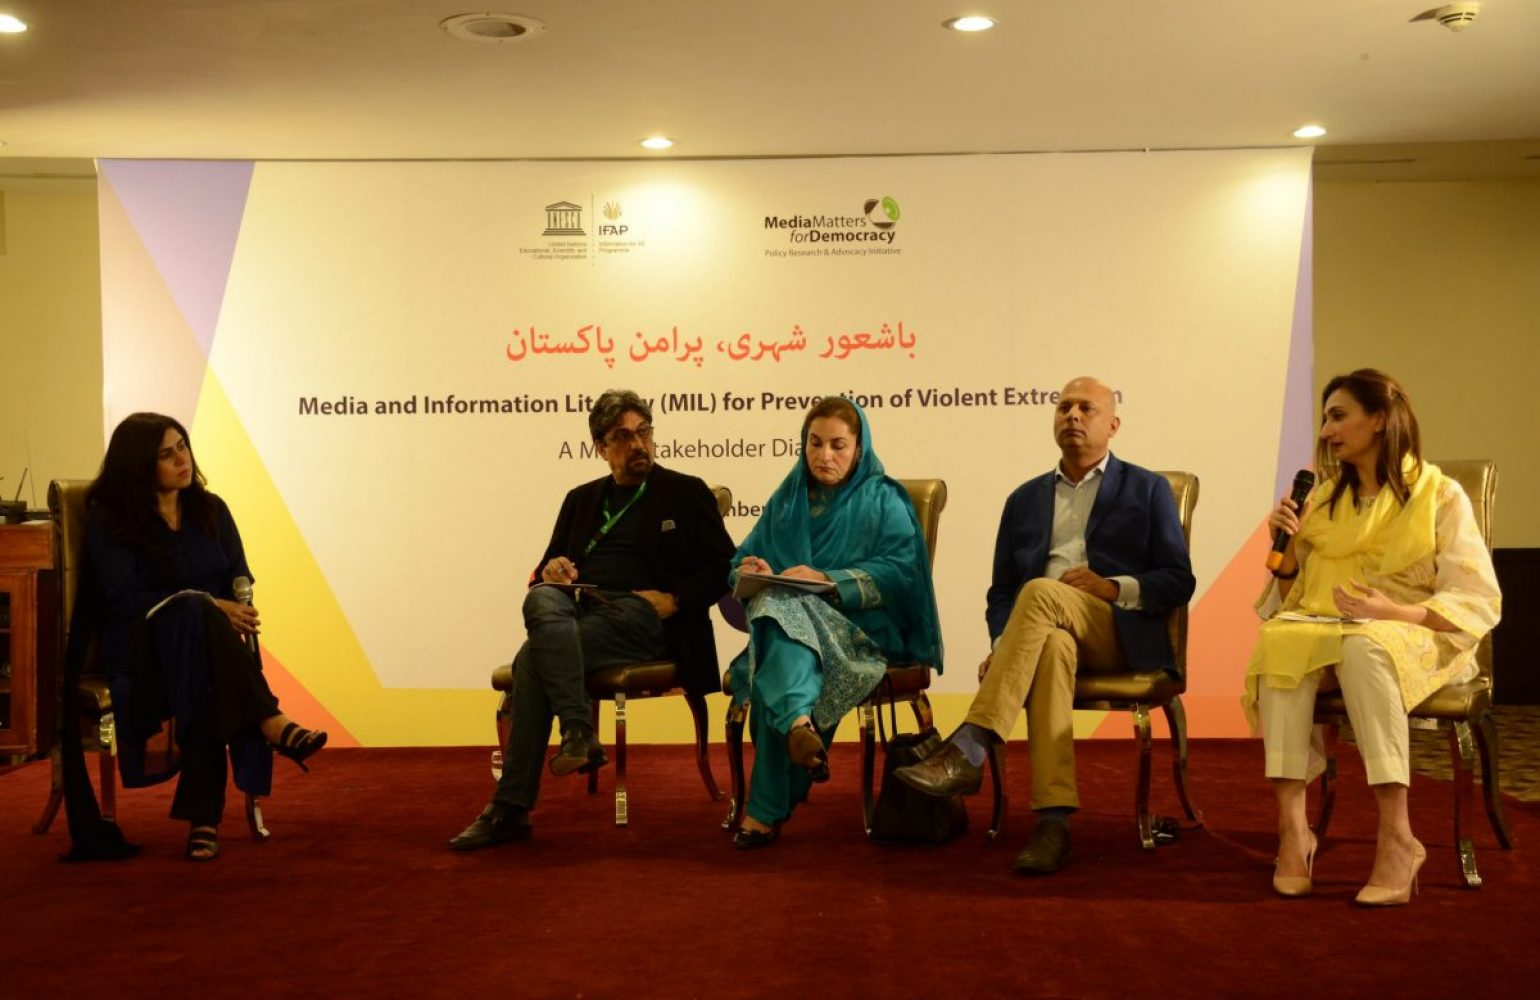 Day 2 of the MIL Conference hosted by MMFD, UNESCO, and IFAP: Stakeholders Affirm Need for 'Media and Information Literacy' to Challenge Violent Extremism